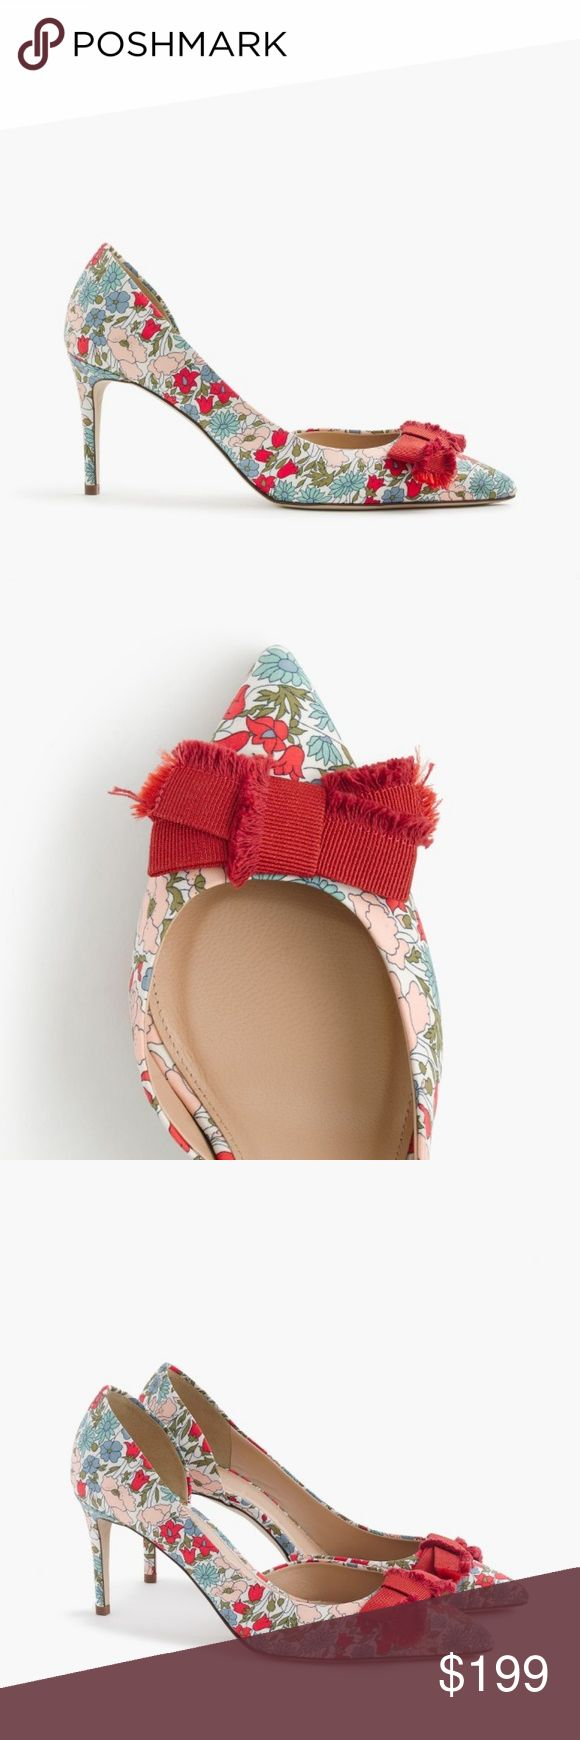 "HOST PICK*J Crew Colette poppy & daisy floral pump **MARKED DOWN**PRICE FIRM! Even now ""on sale"" for $189 at J Crew. No offers accepted. A new take on an always-classic mid heel. This pattern is from Liberty Art Fabrics. A mix of teeny daisies, poppies and bell flowers are just as fun now as they were back then. Cotton upper. Leather lining. Man-made sole. Made in Italy. Brand new in box, never even tried on, size 10. Heel is approximately 3"". Bought directly from J.Crew, no outlets. J. Crew…"